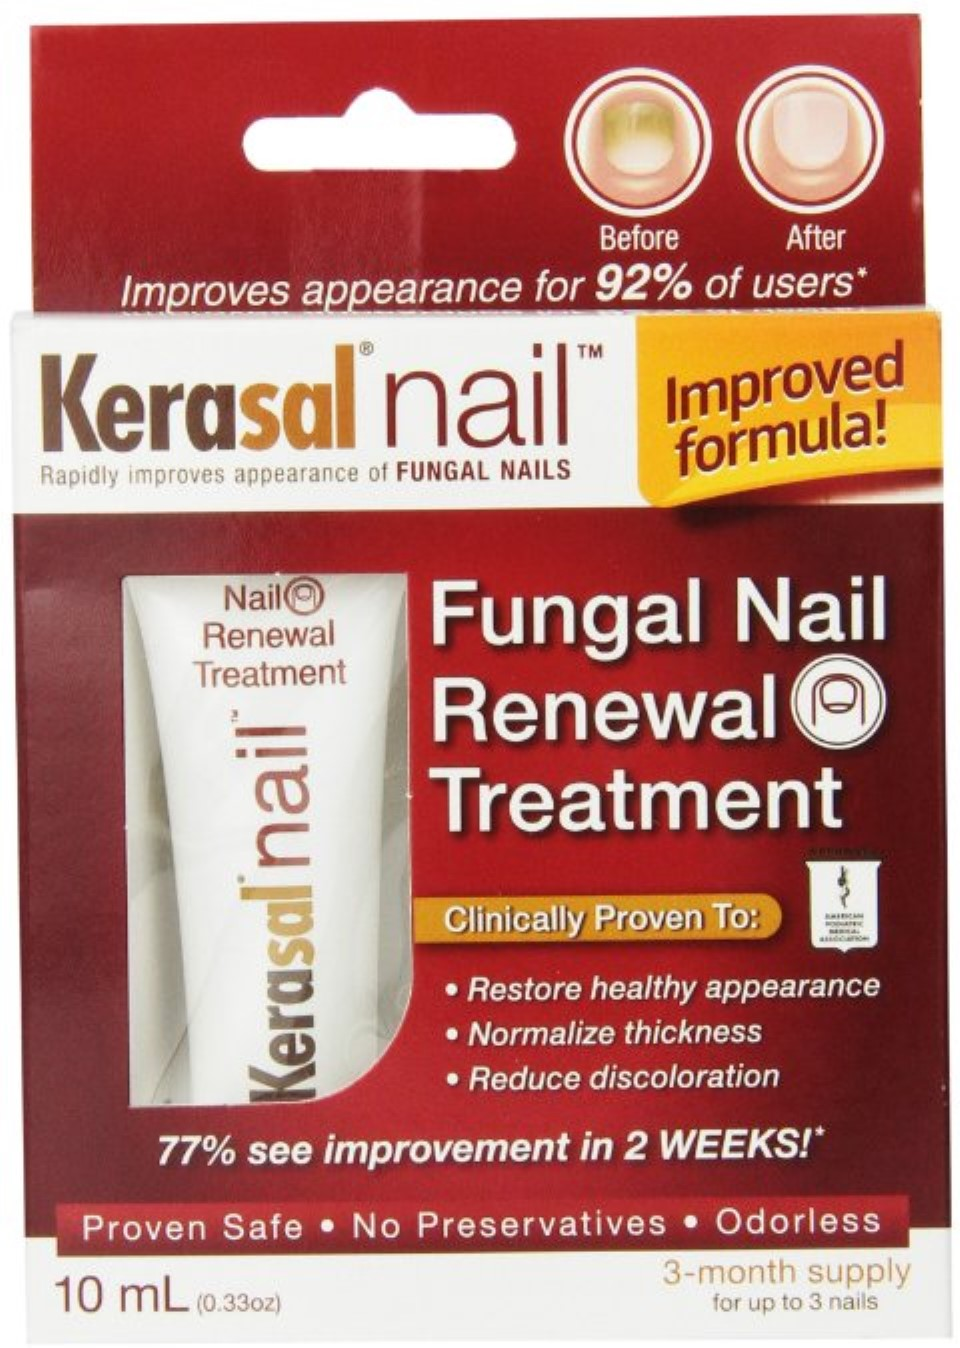 Kerasal Nail Fungal Nail Renewal Treatment 0.33 oz - Walmart.com